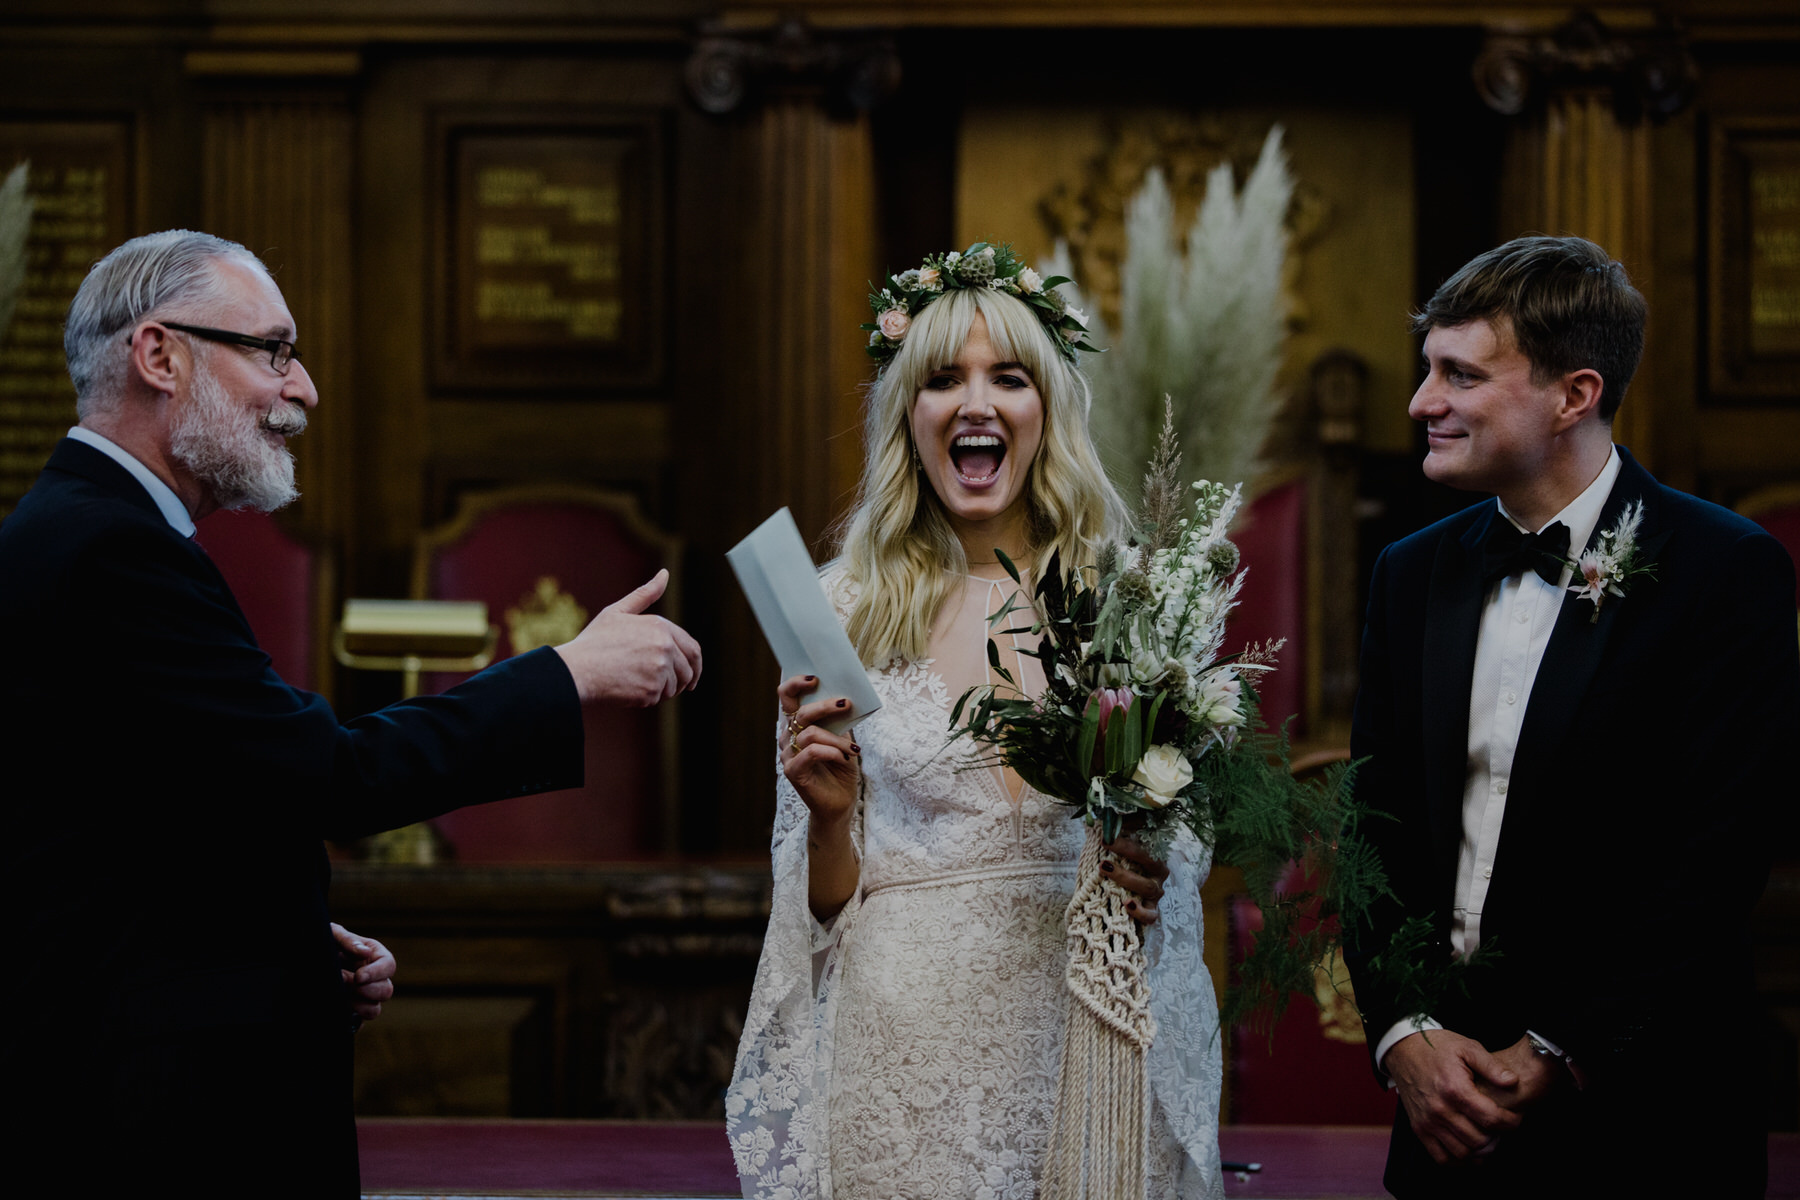 bride receiving marriage certificate London wedding photographer.jpg